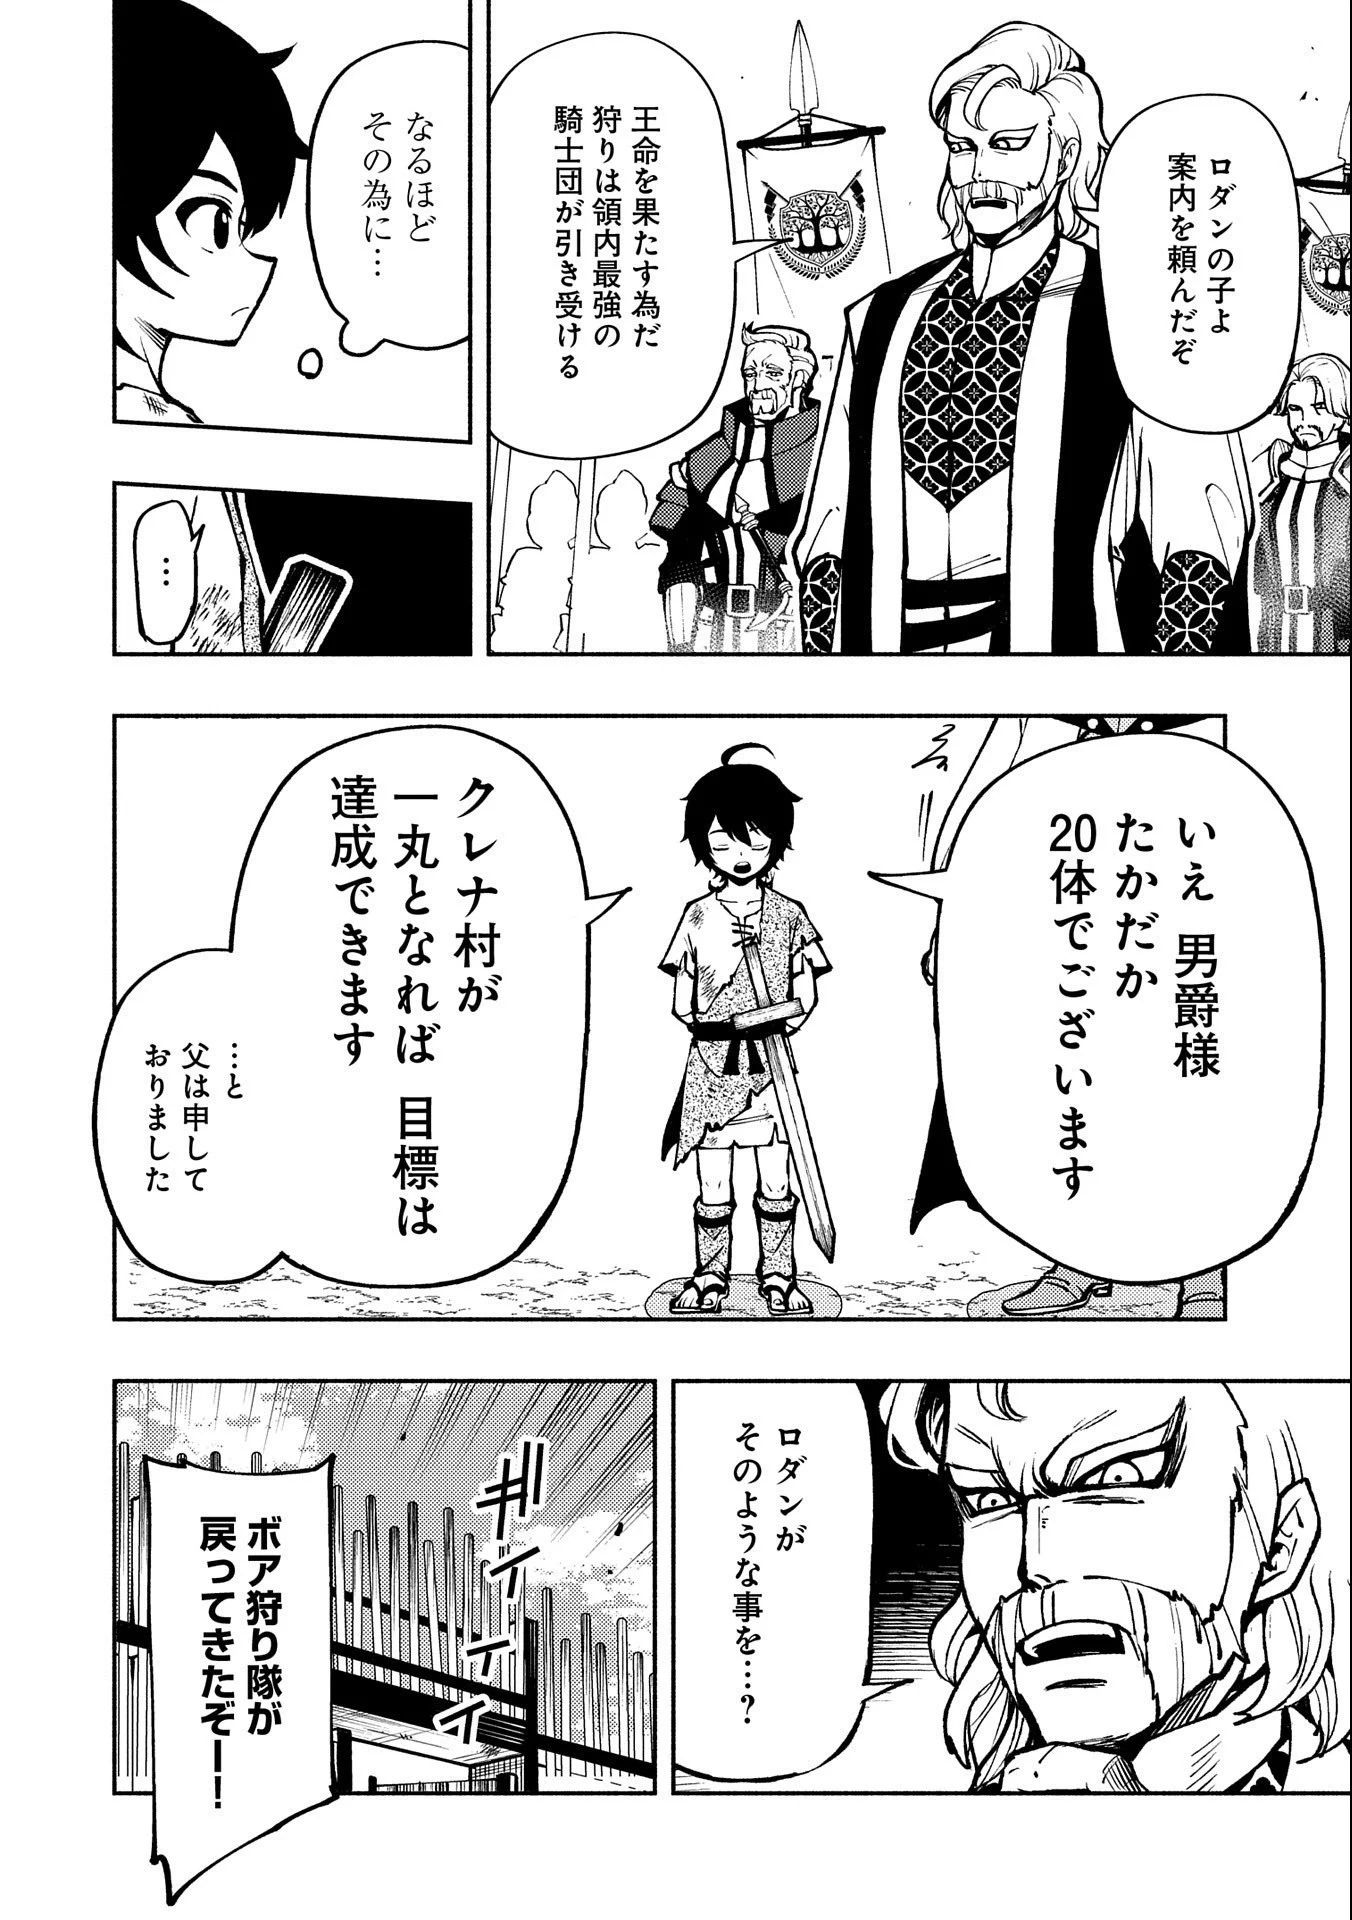 Manga Raw Hell Mode Yarikomi Suki no Gamer wa Hai Settei no Isekai de Musou Suru Manga Chapter 04